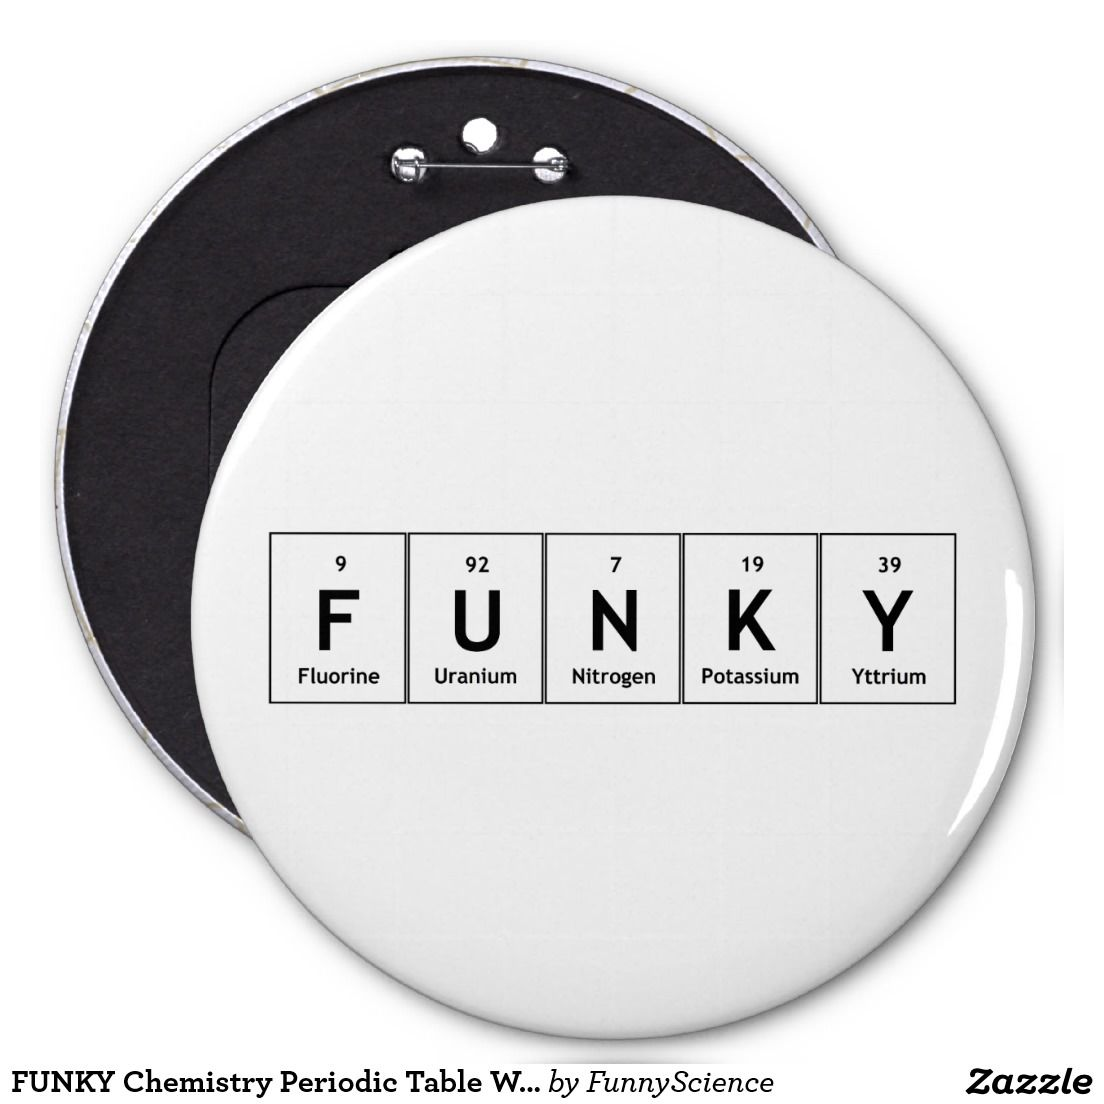 Funky chemistry periodic table words elements atom 6 inch round funky chemistry periodic table words elements atom 6 inch round button gamestrikefo Image collections